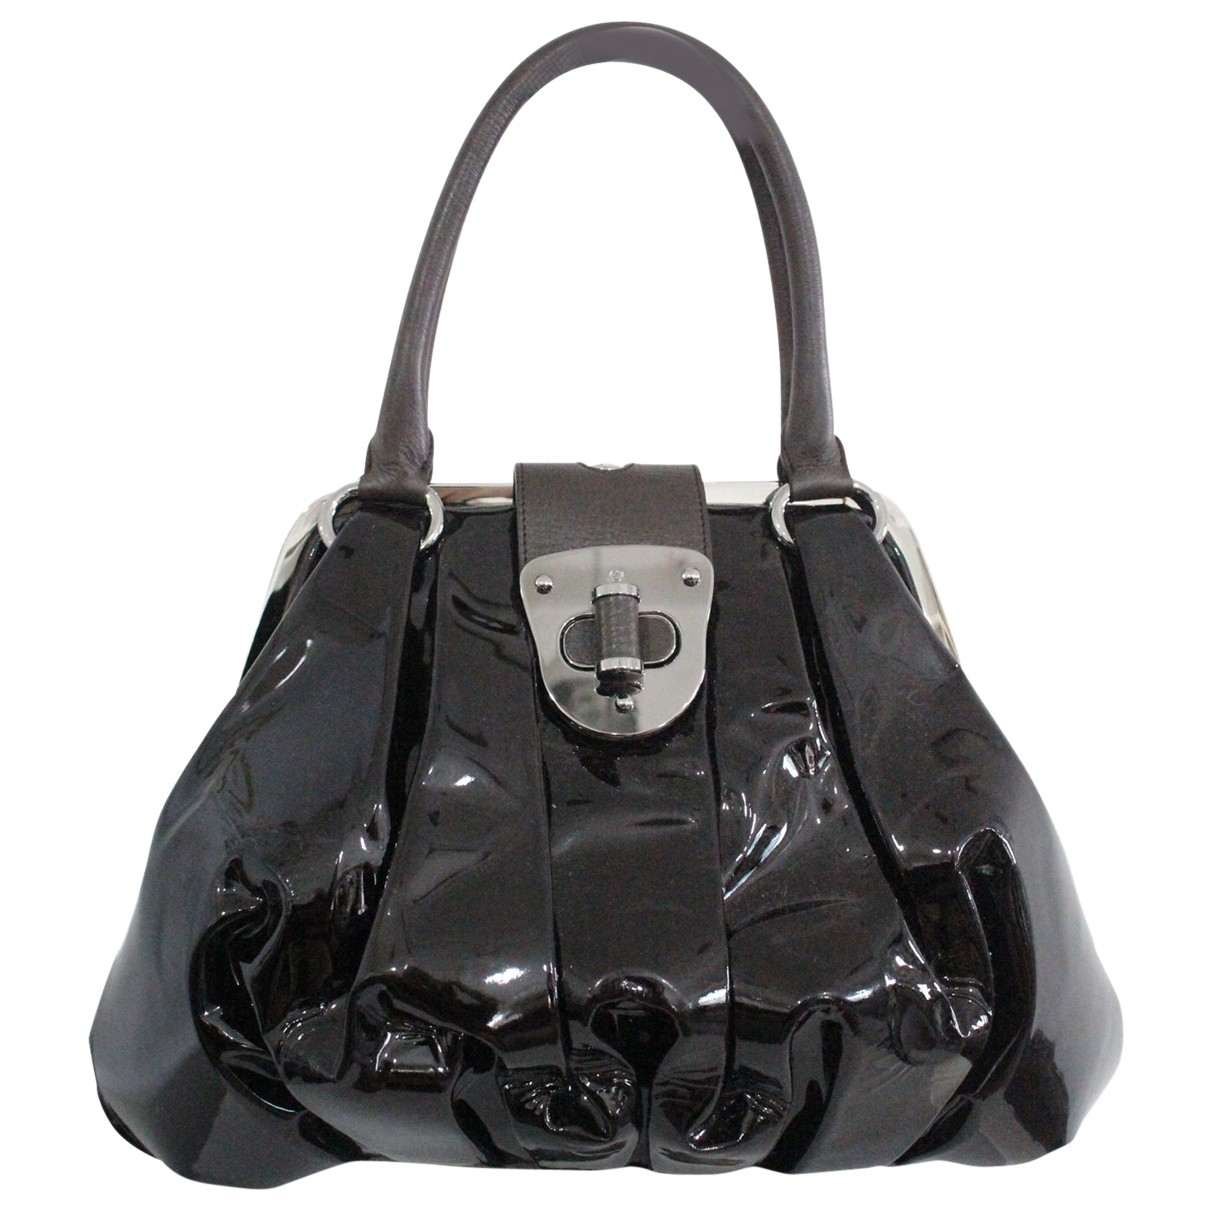 Alexander Mcqueen \N Brown Patent leather handbag for Women \N